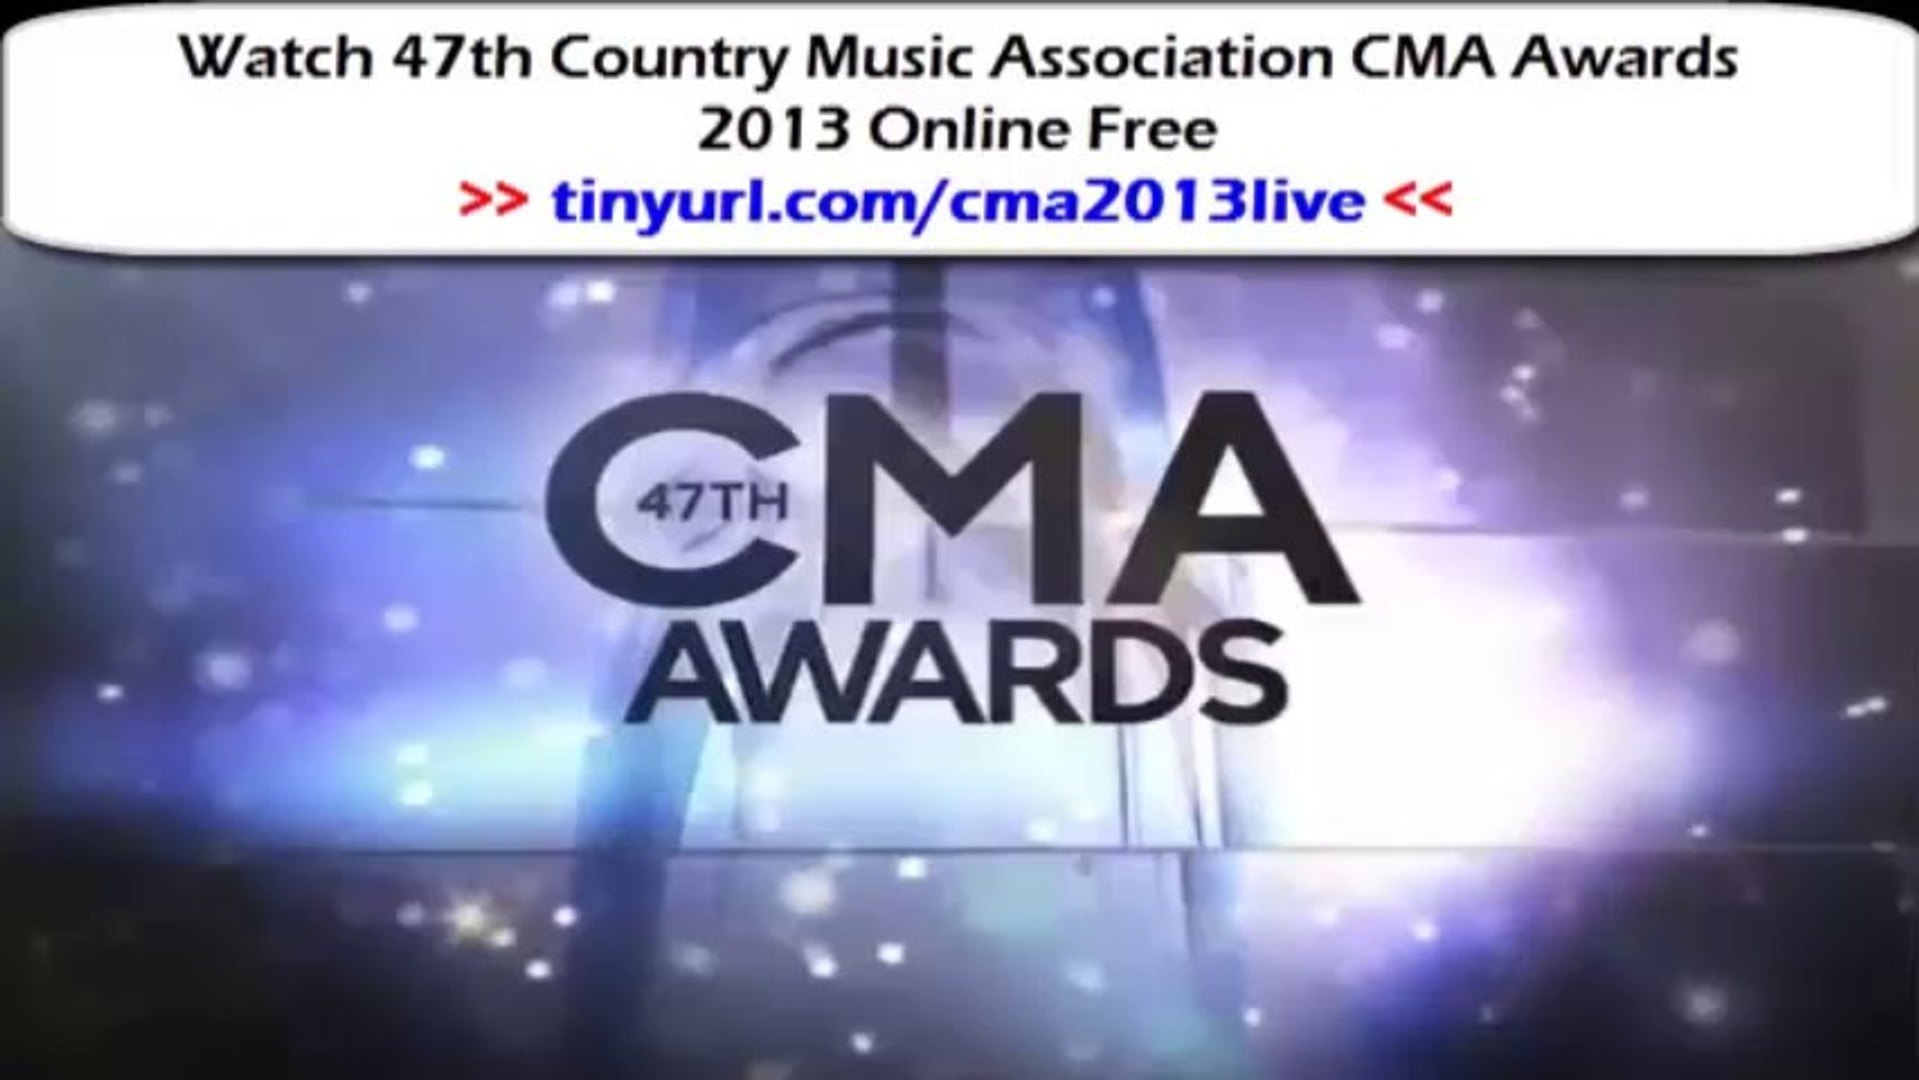 Watch 47th Country Music Association CMA Awards 2013 Online Free!